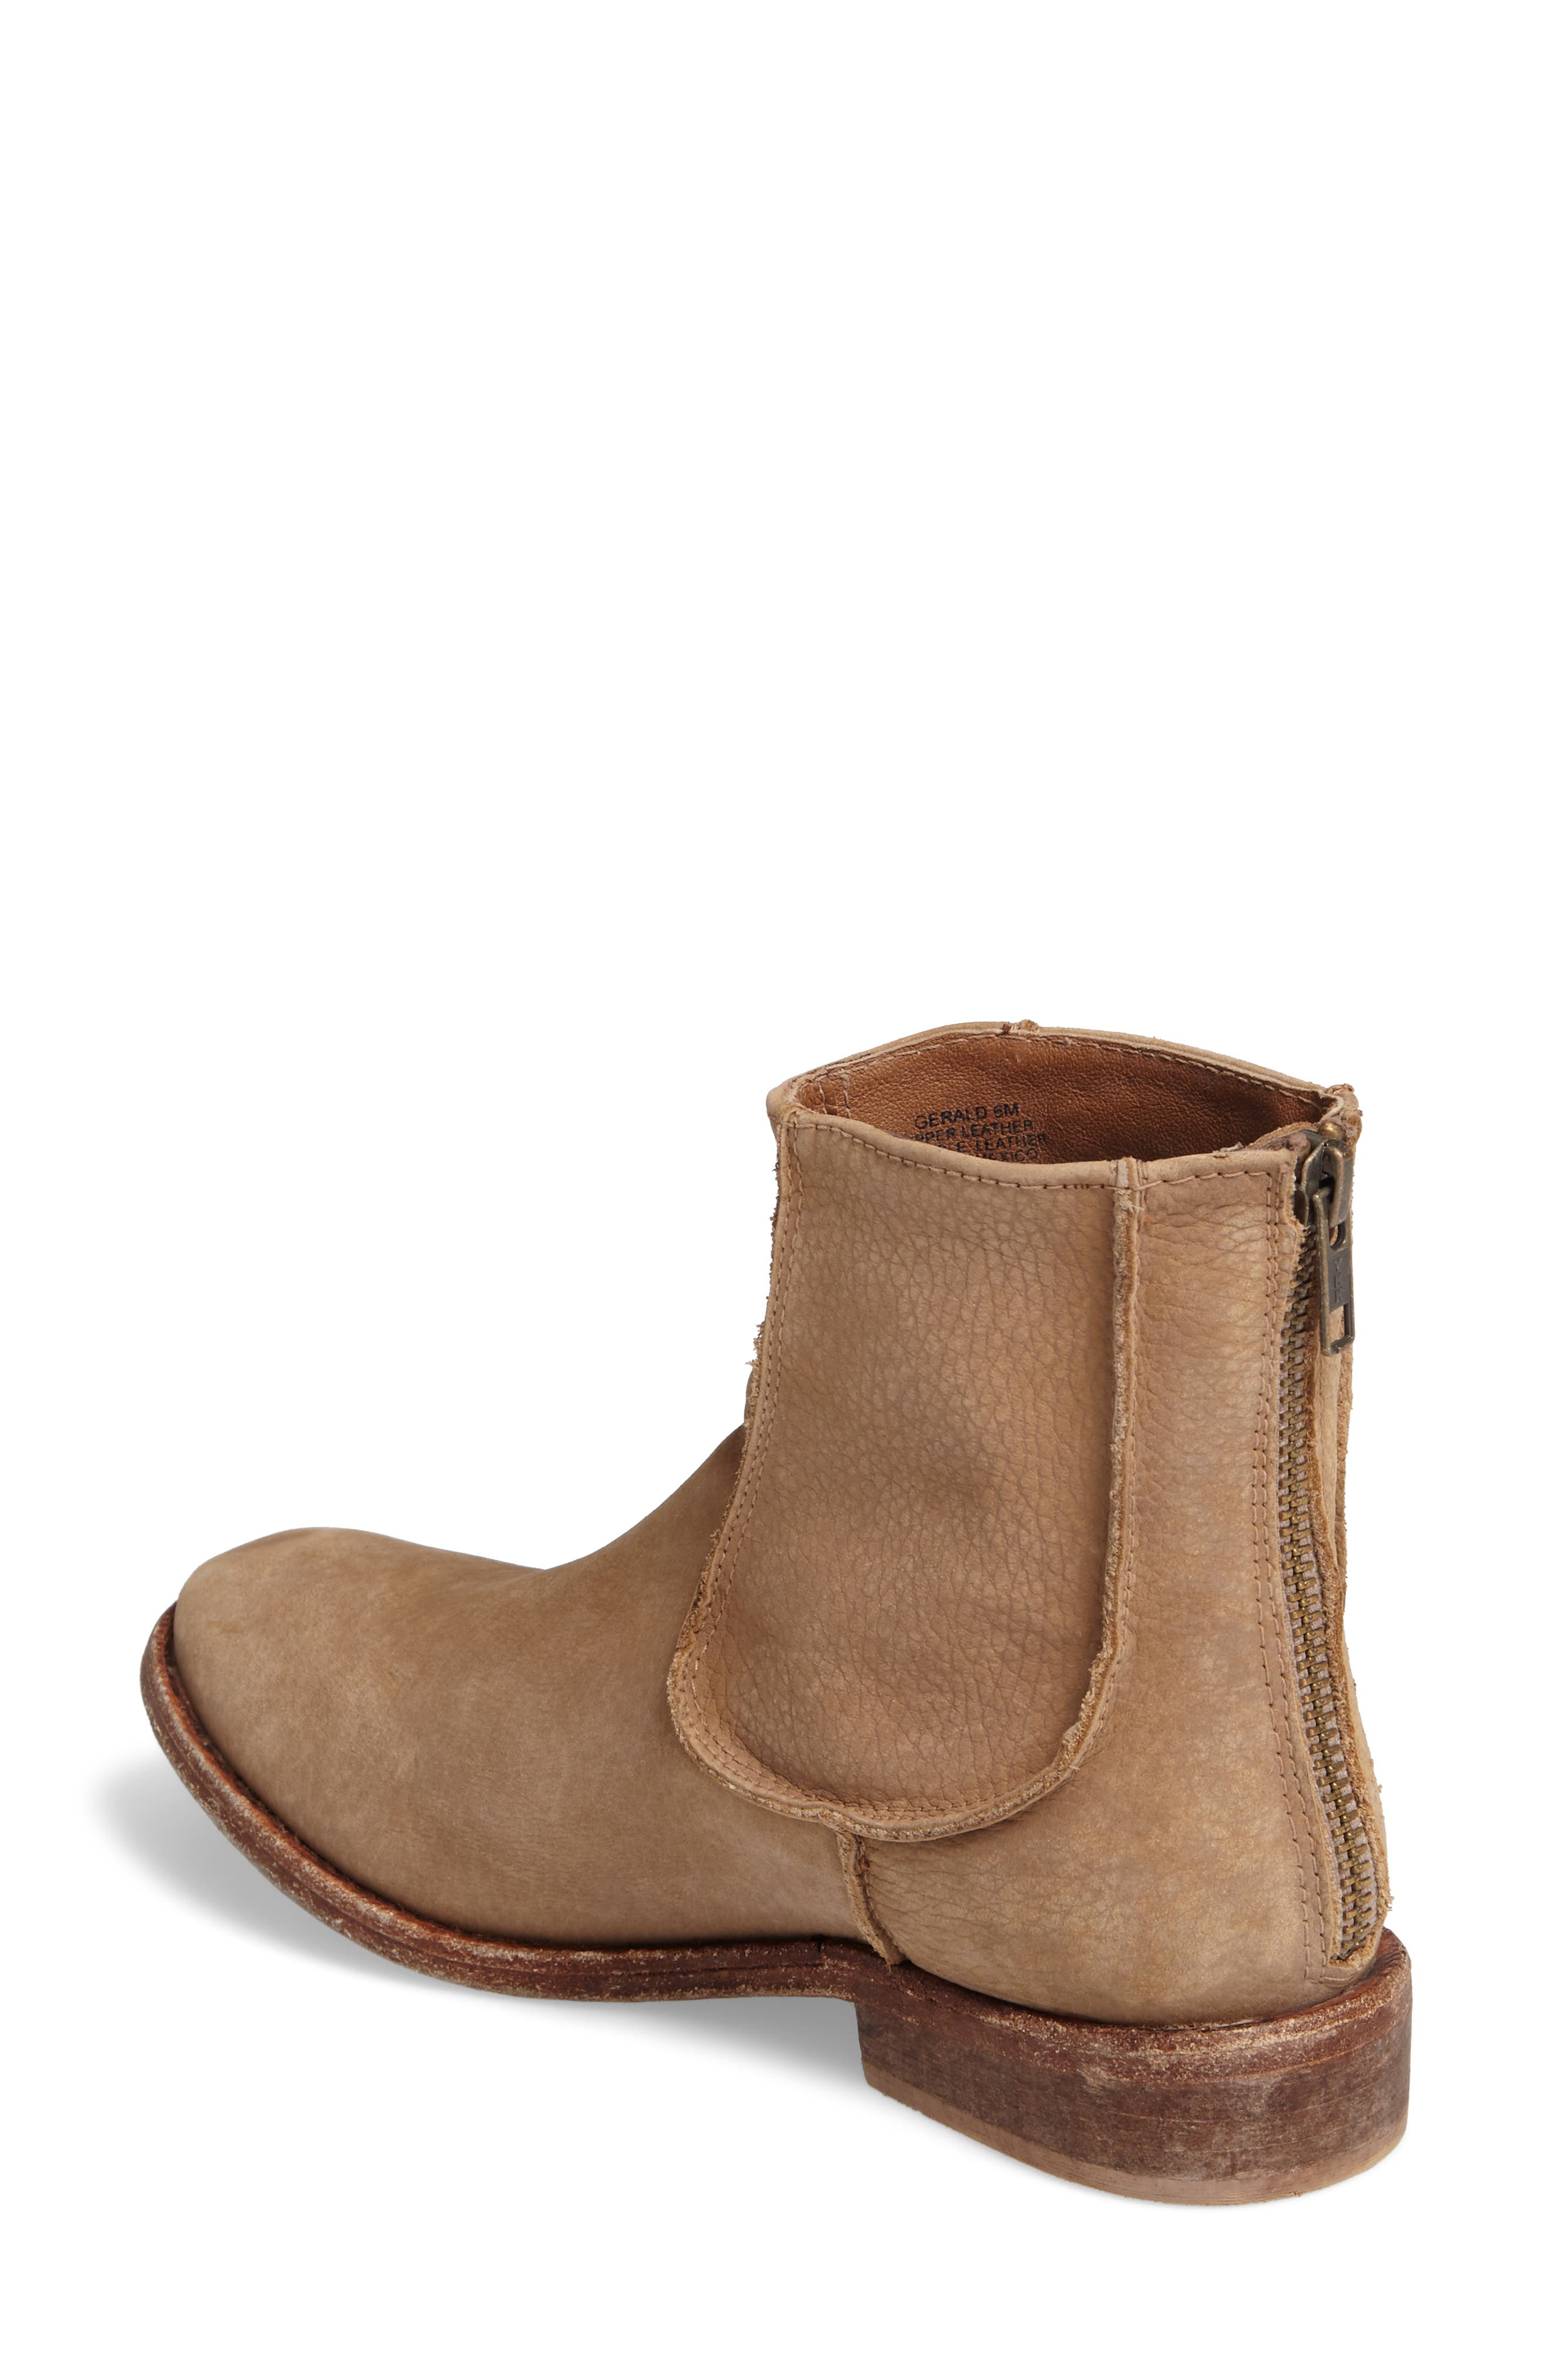 'Gerald' Distressed Bootie,                             Alternate thumbnail 2, color,                             Natural Leather